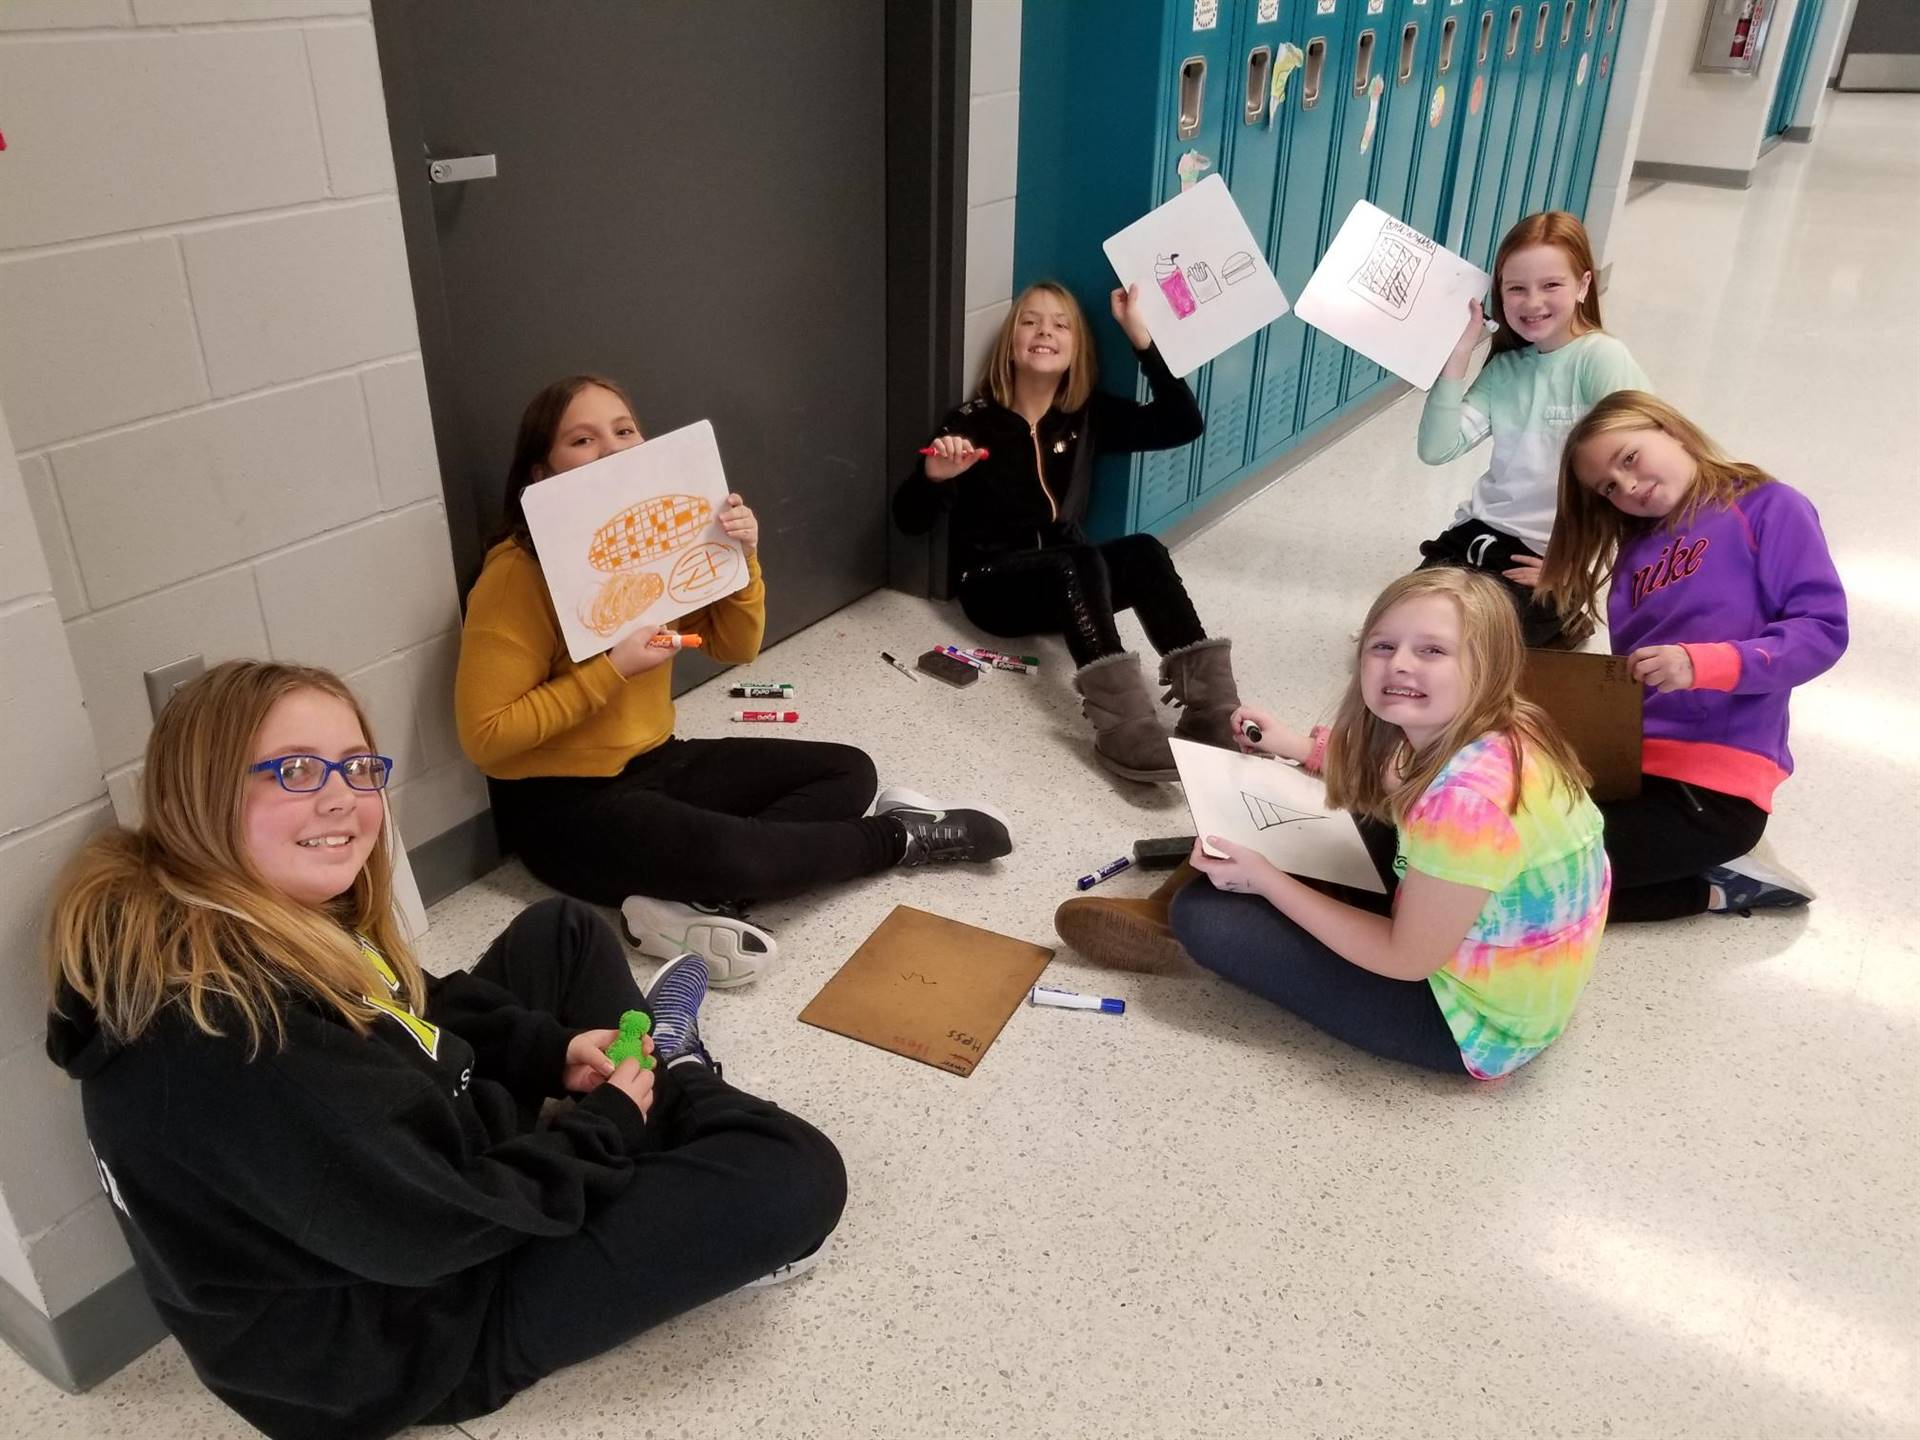 6 4th grade girls writing on white boards during indoor recess